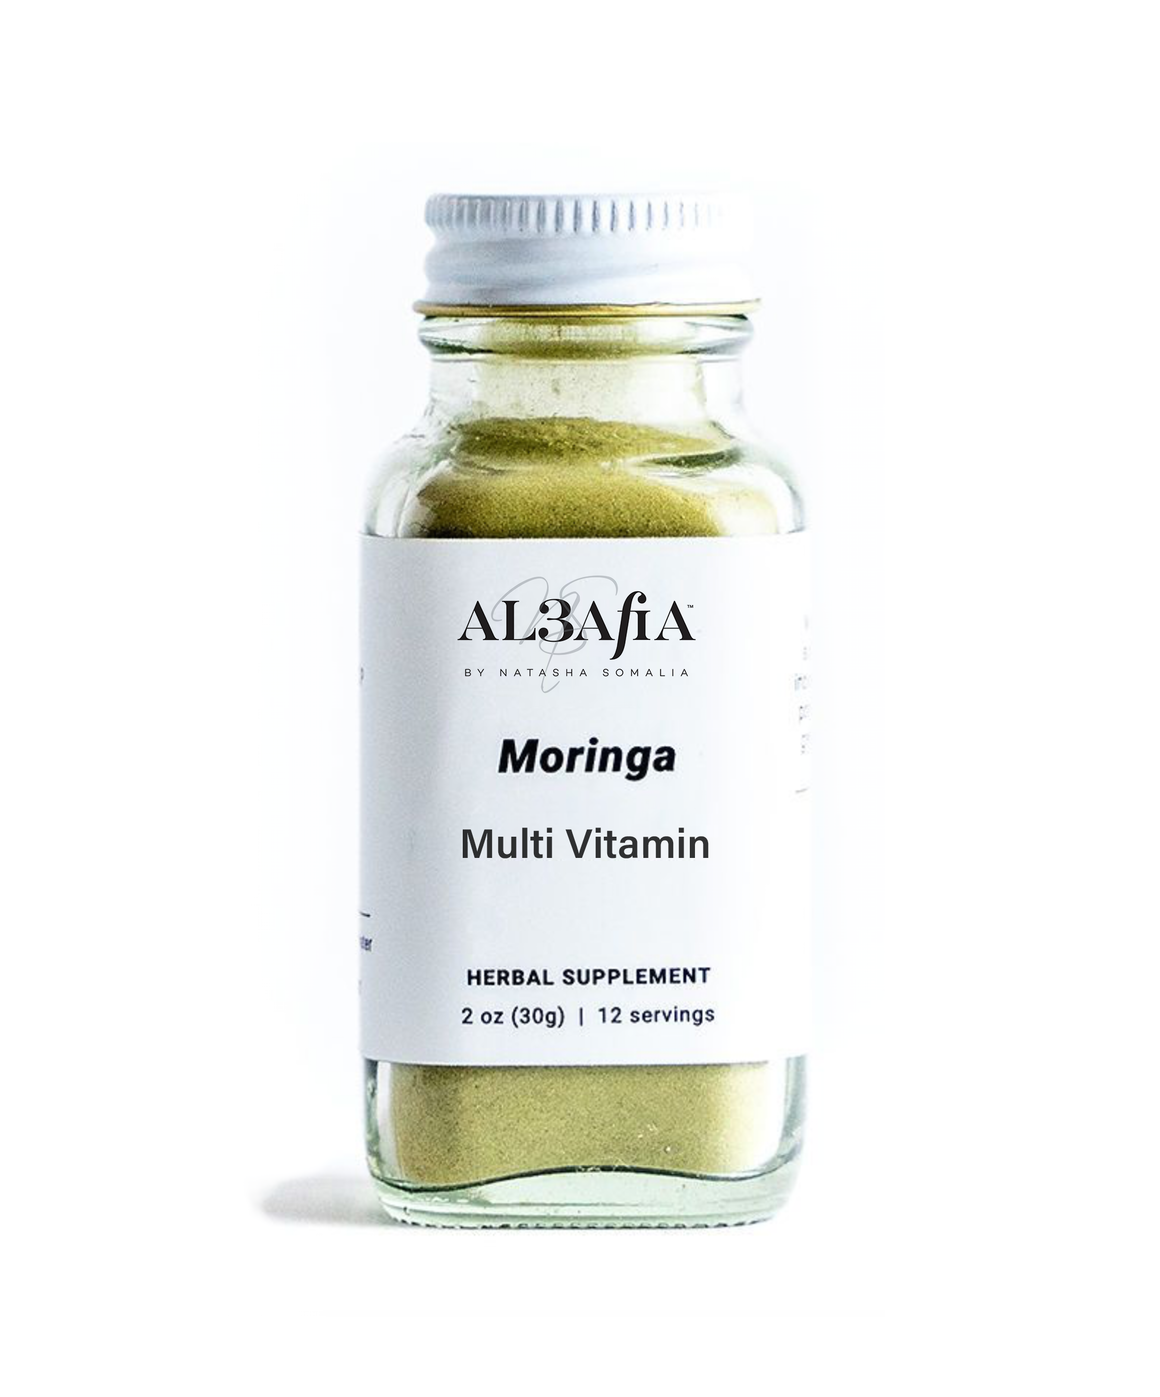 Moringa Multi Vitamin